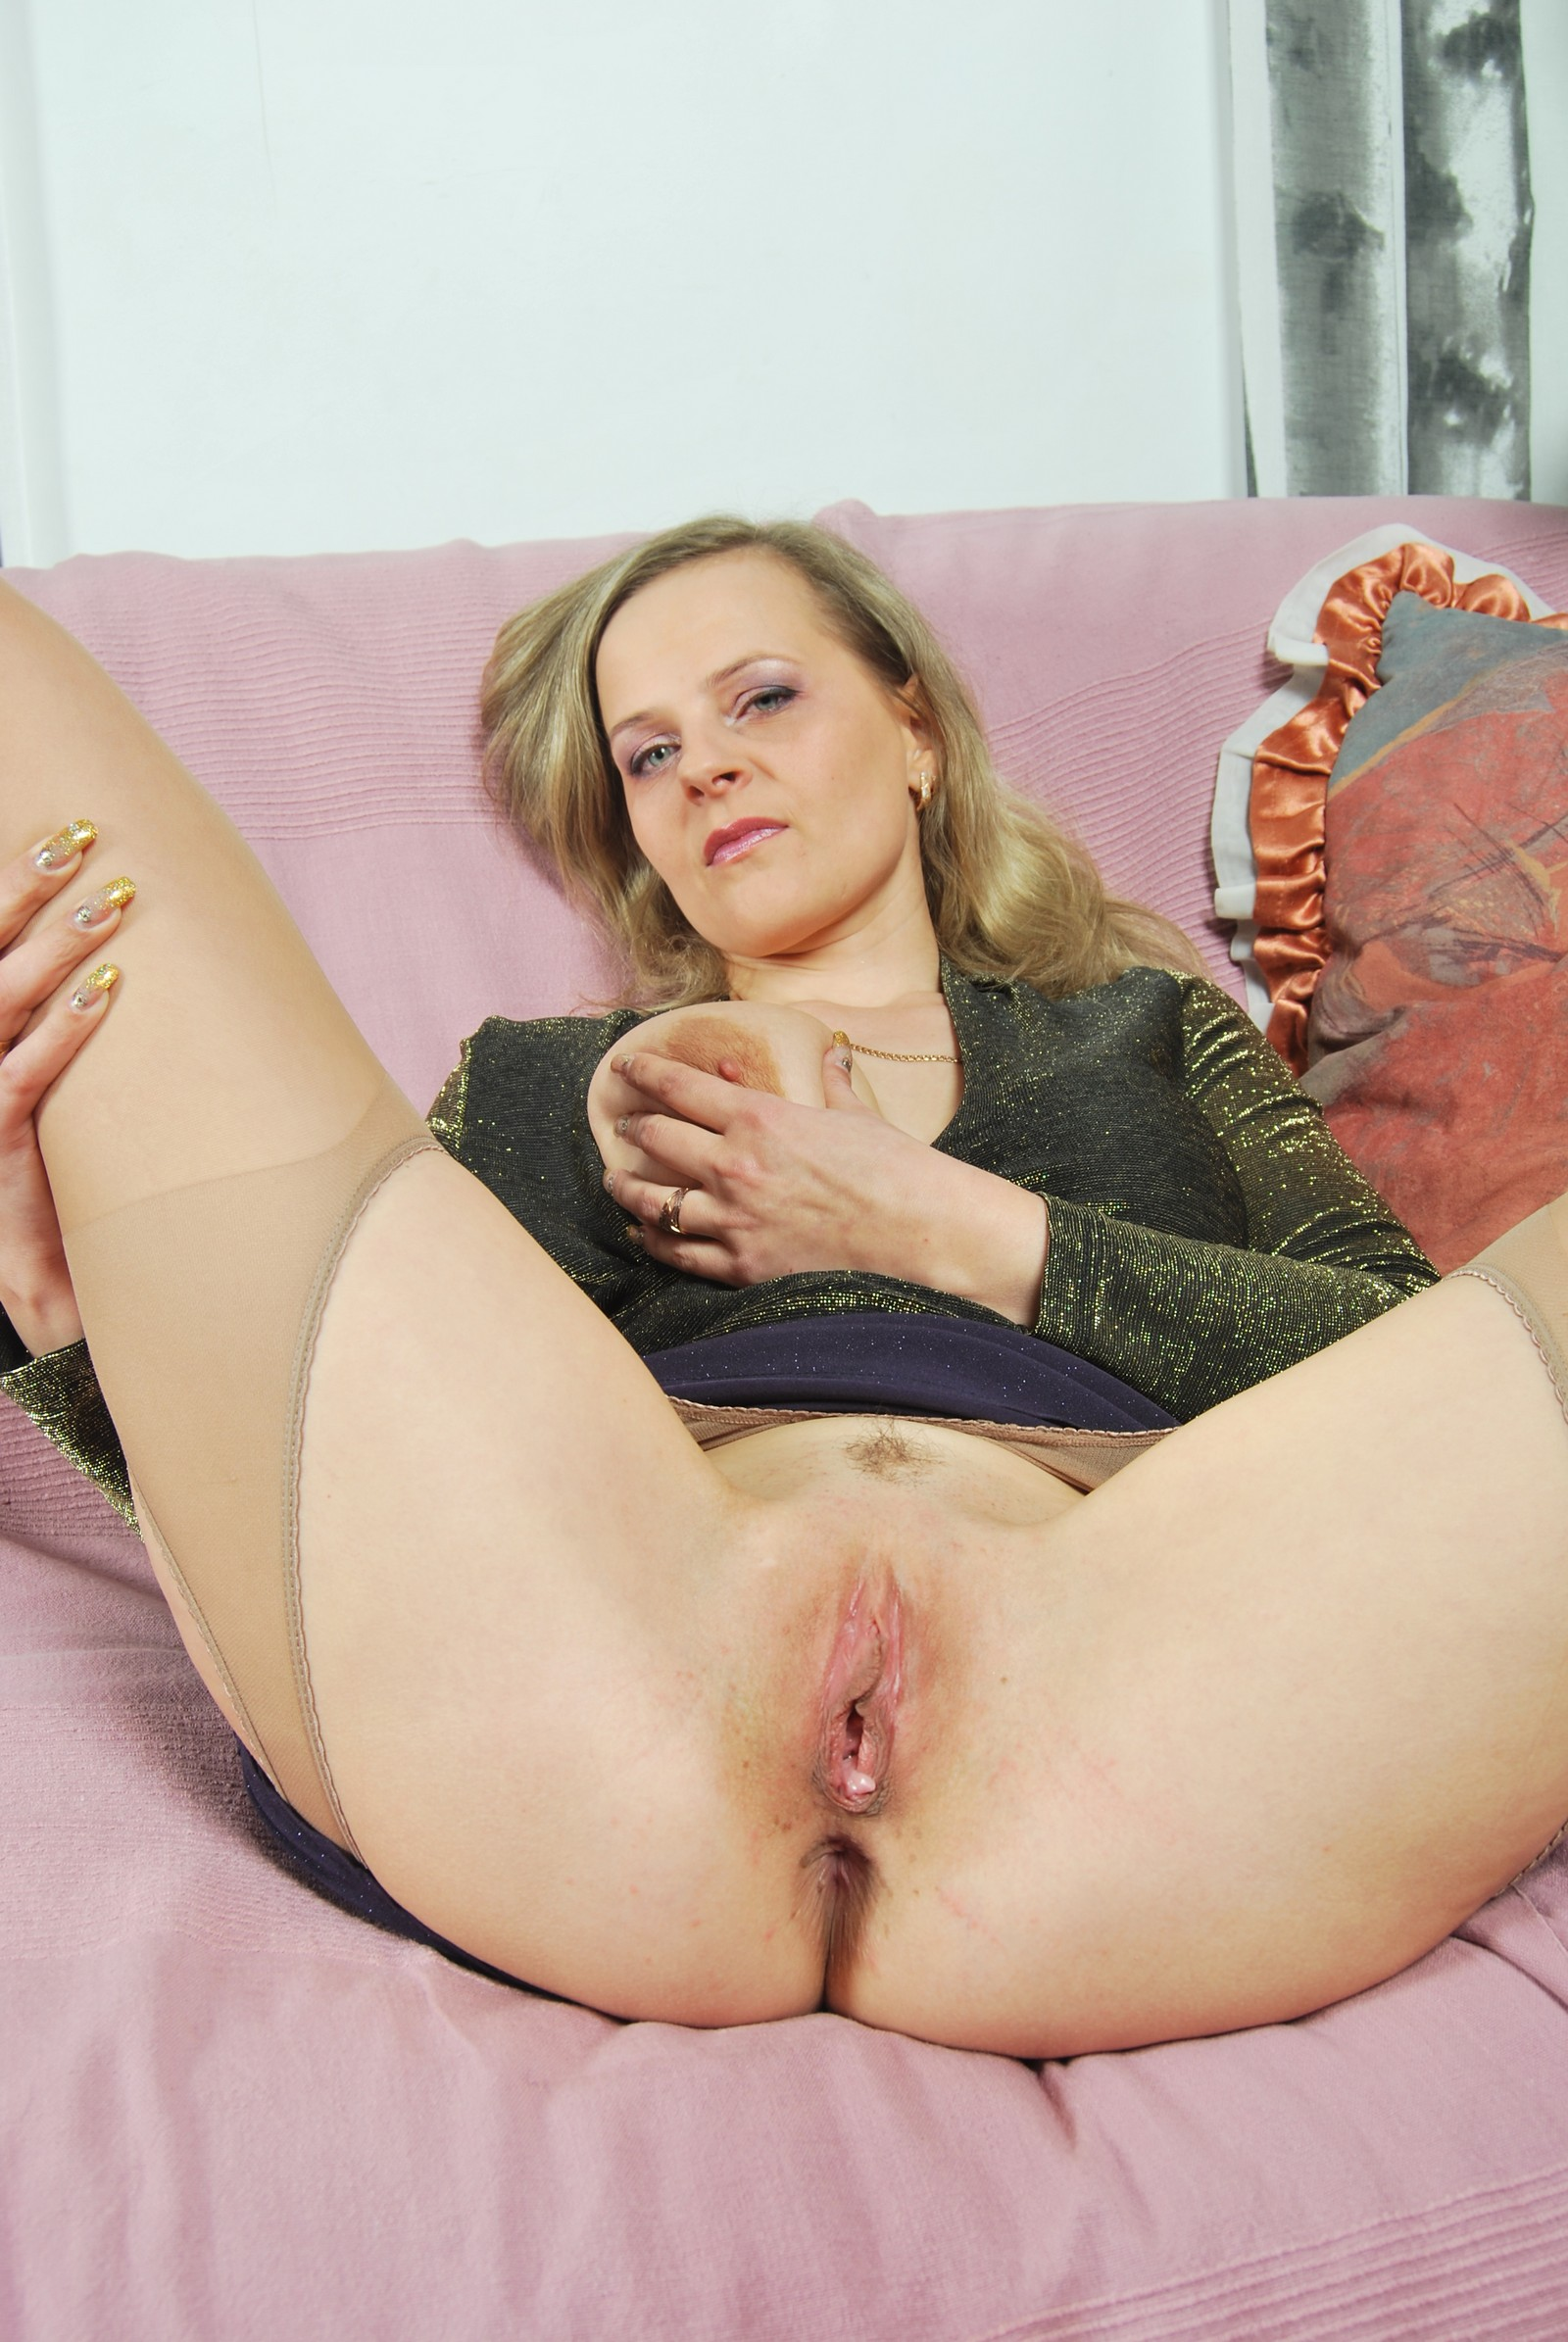 Nasty chick demonstrates her pussy before blowjob